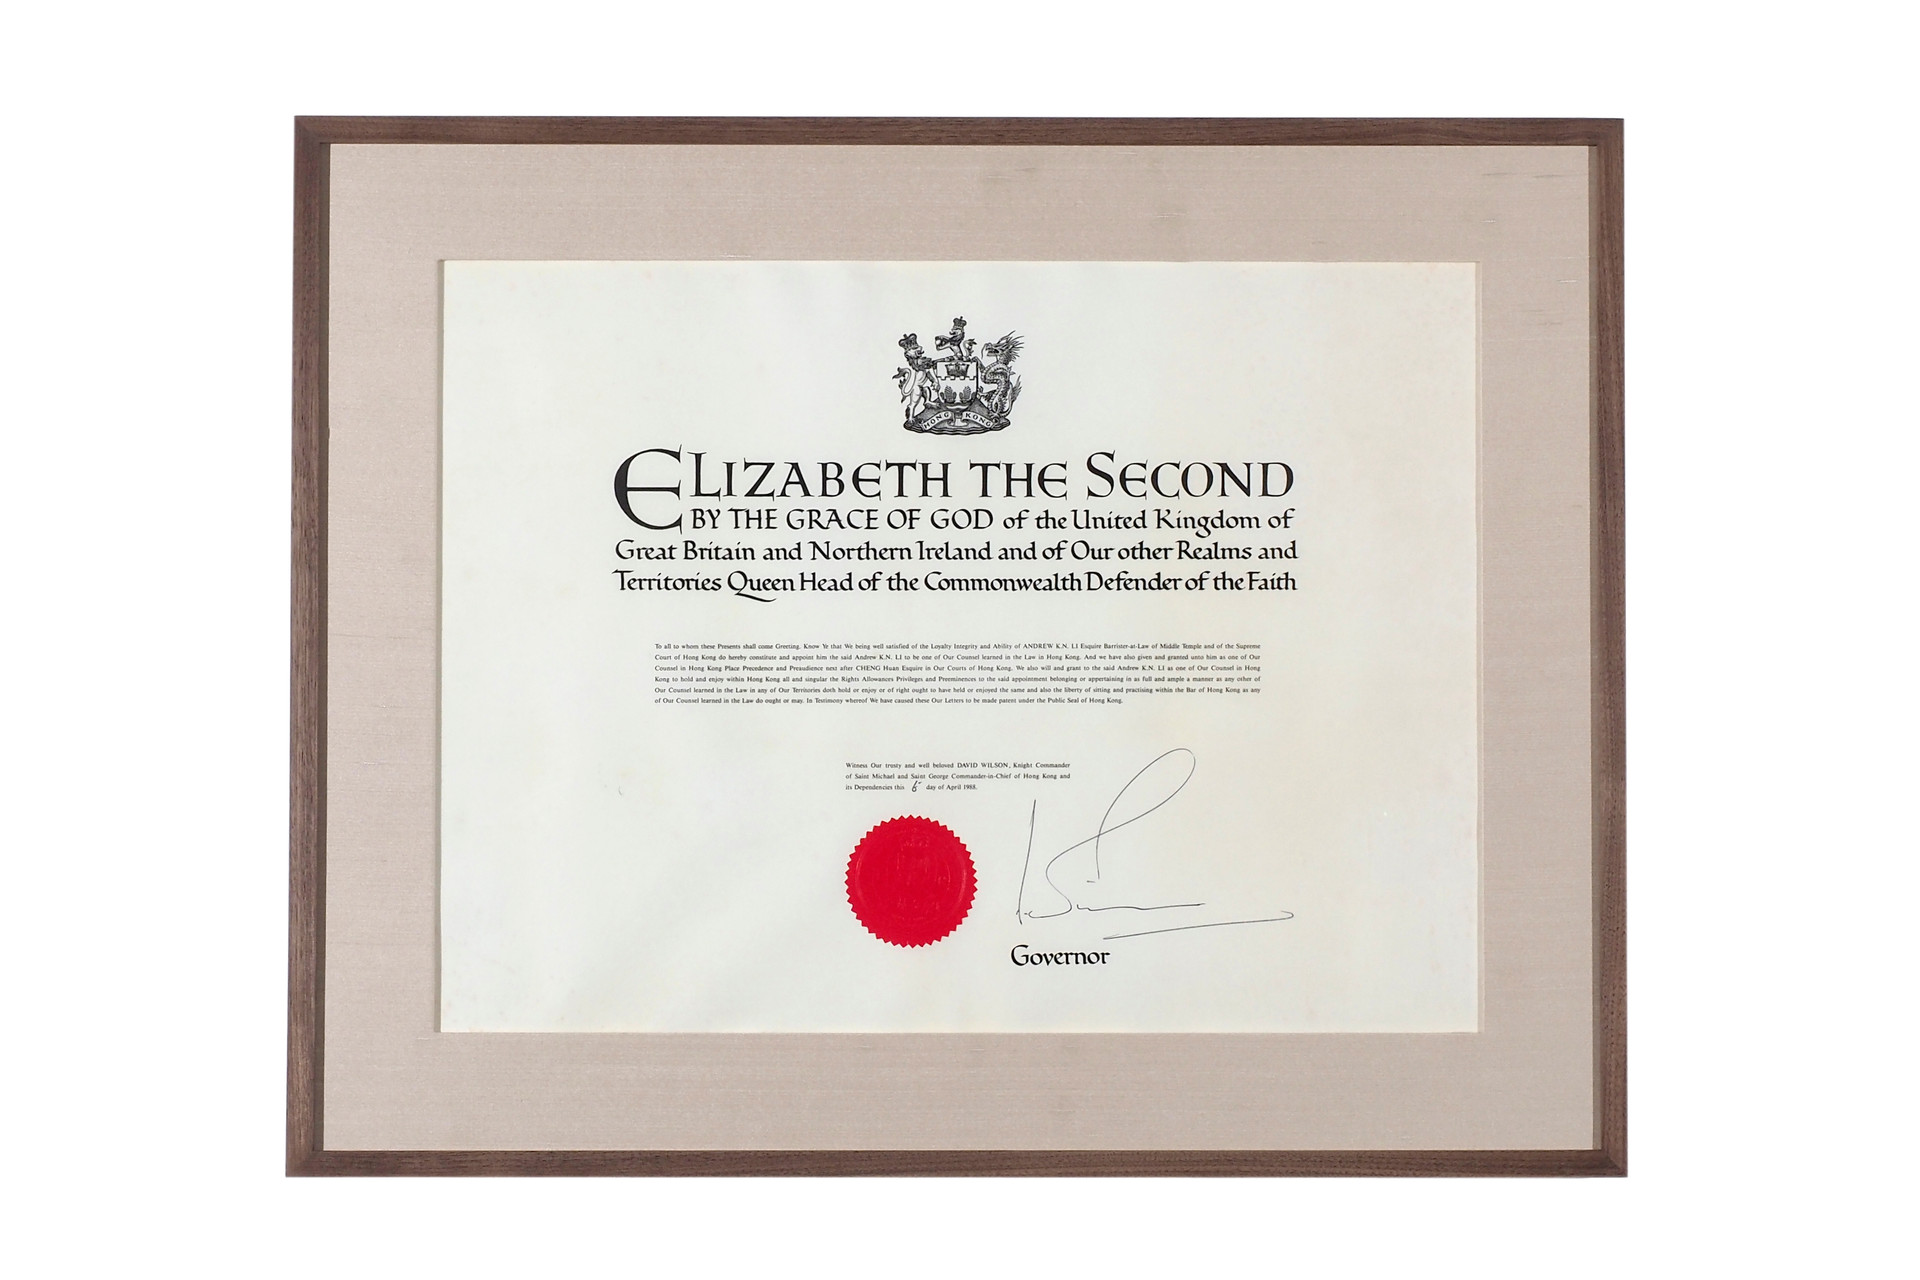 Instrument of Appointment by Letters Patent